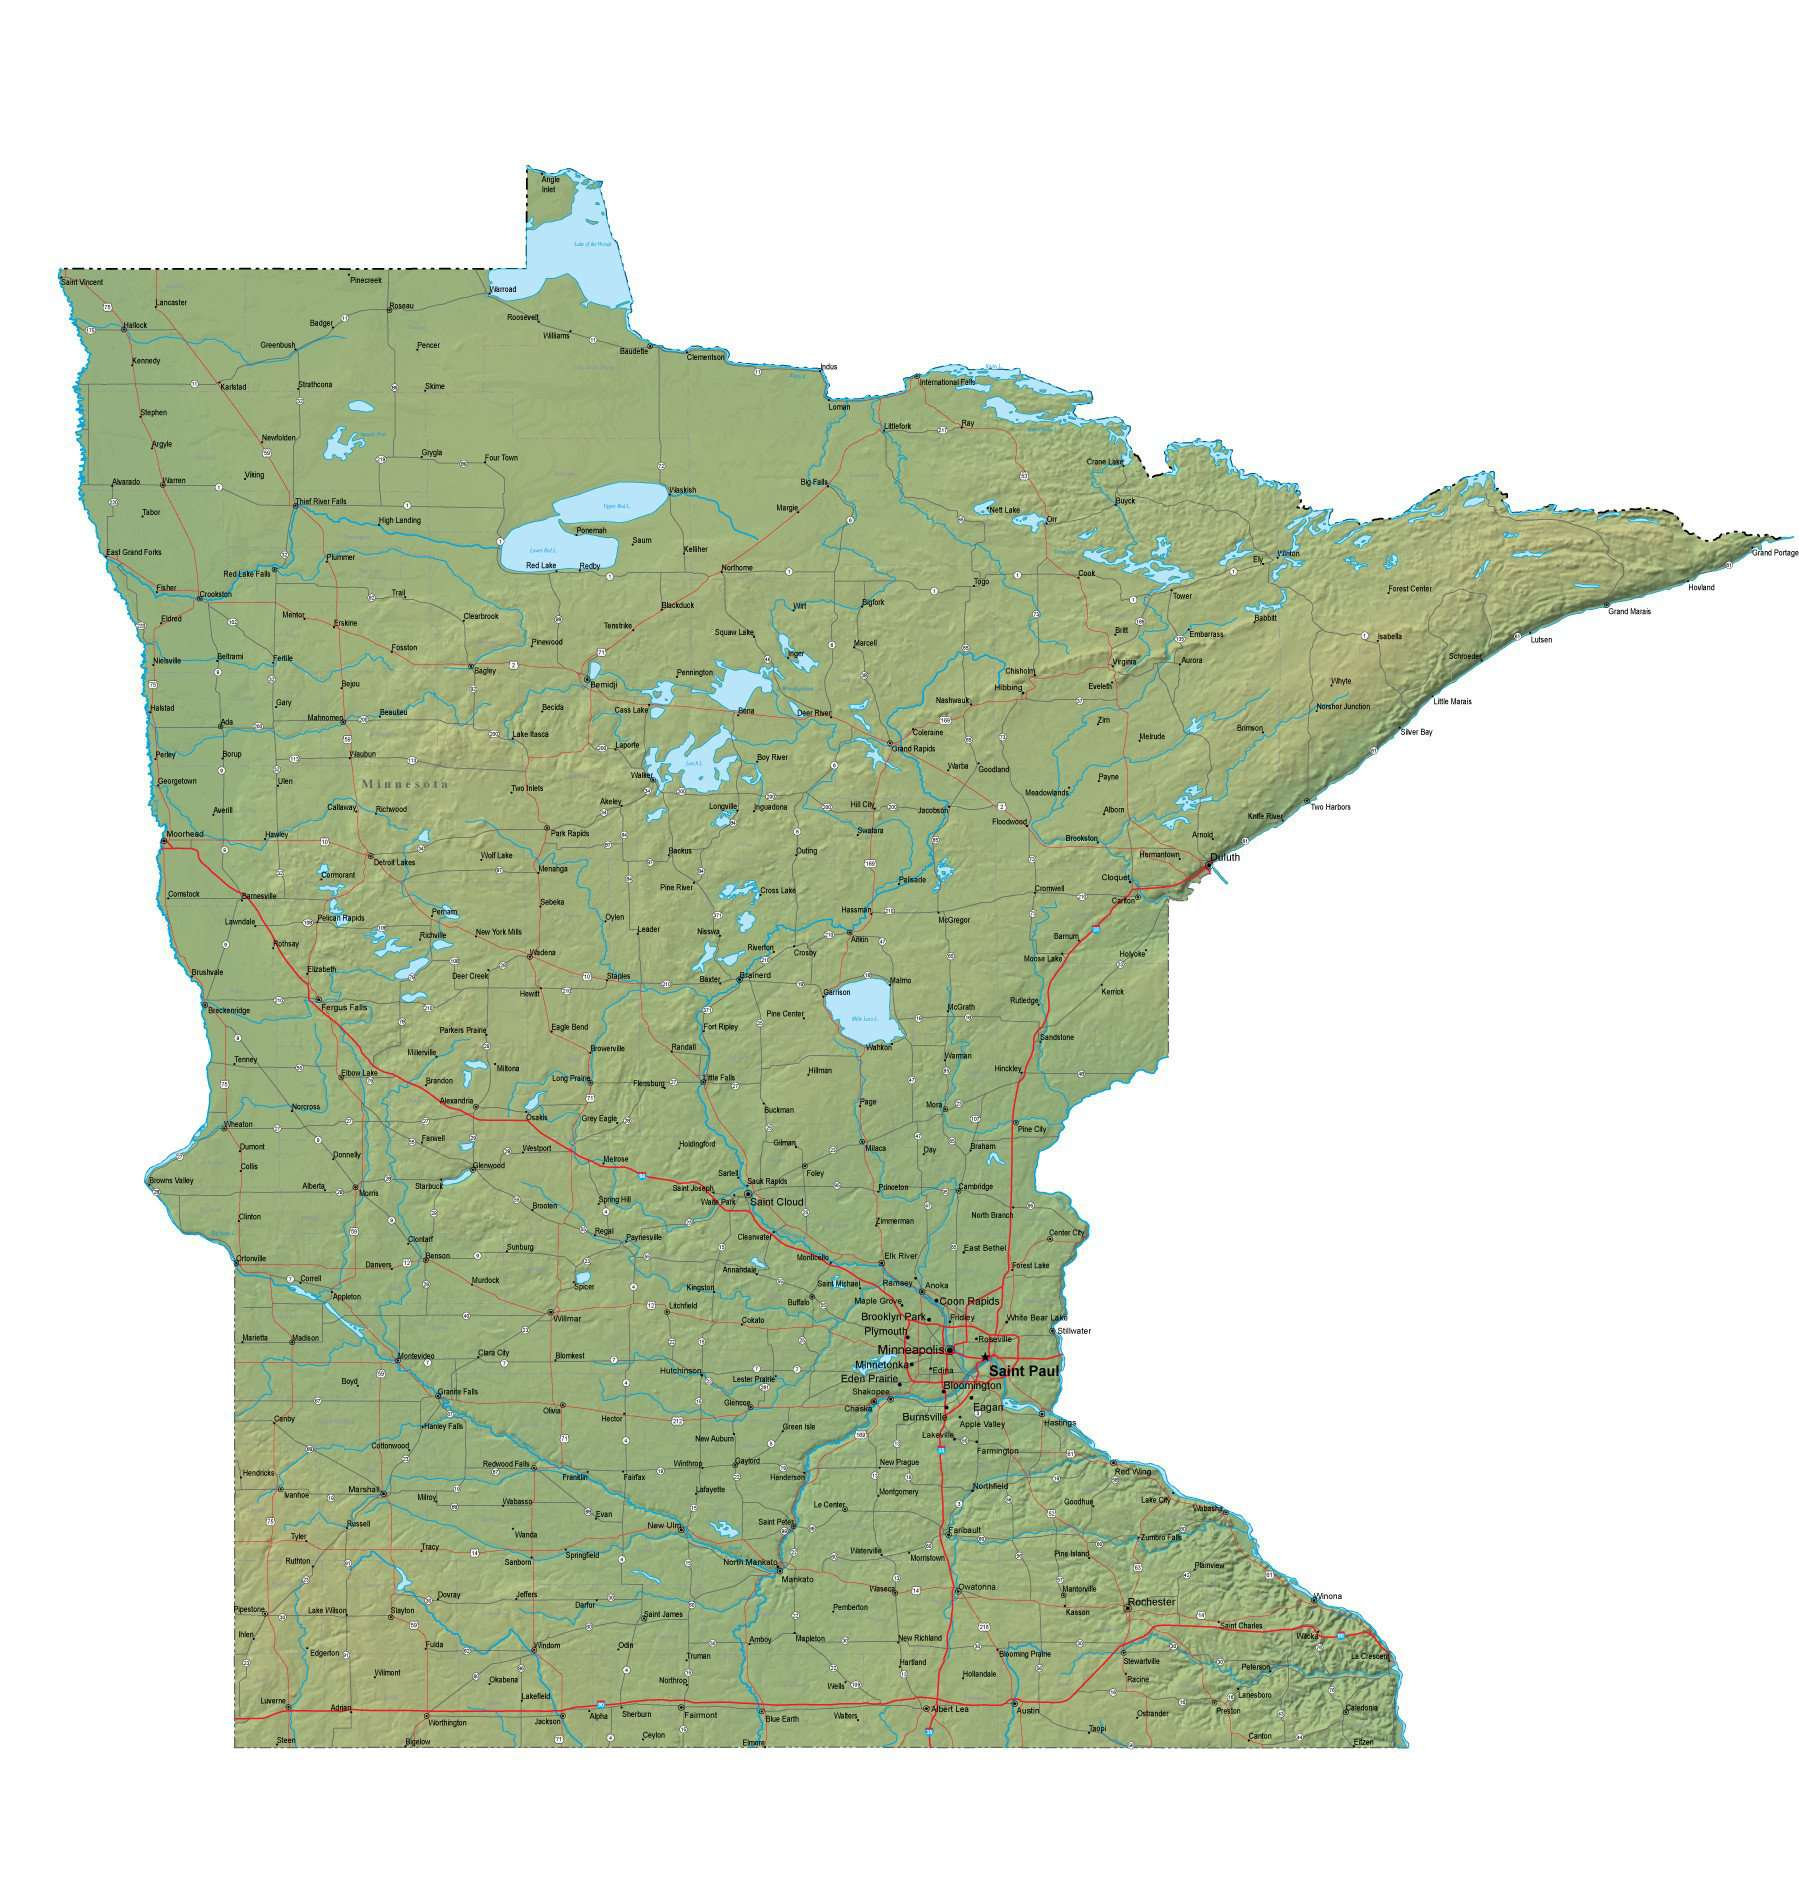 Minnesota Map - Cut Out Style - Fit Together Series Plus Terrain